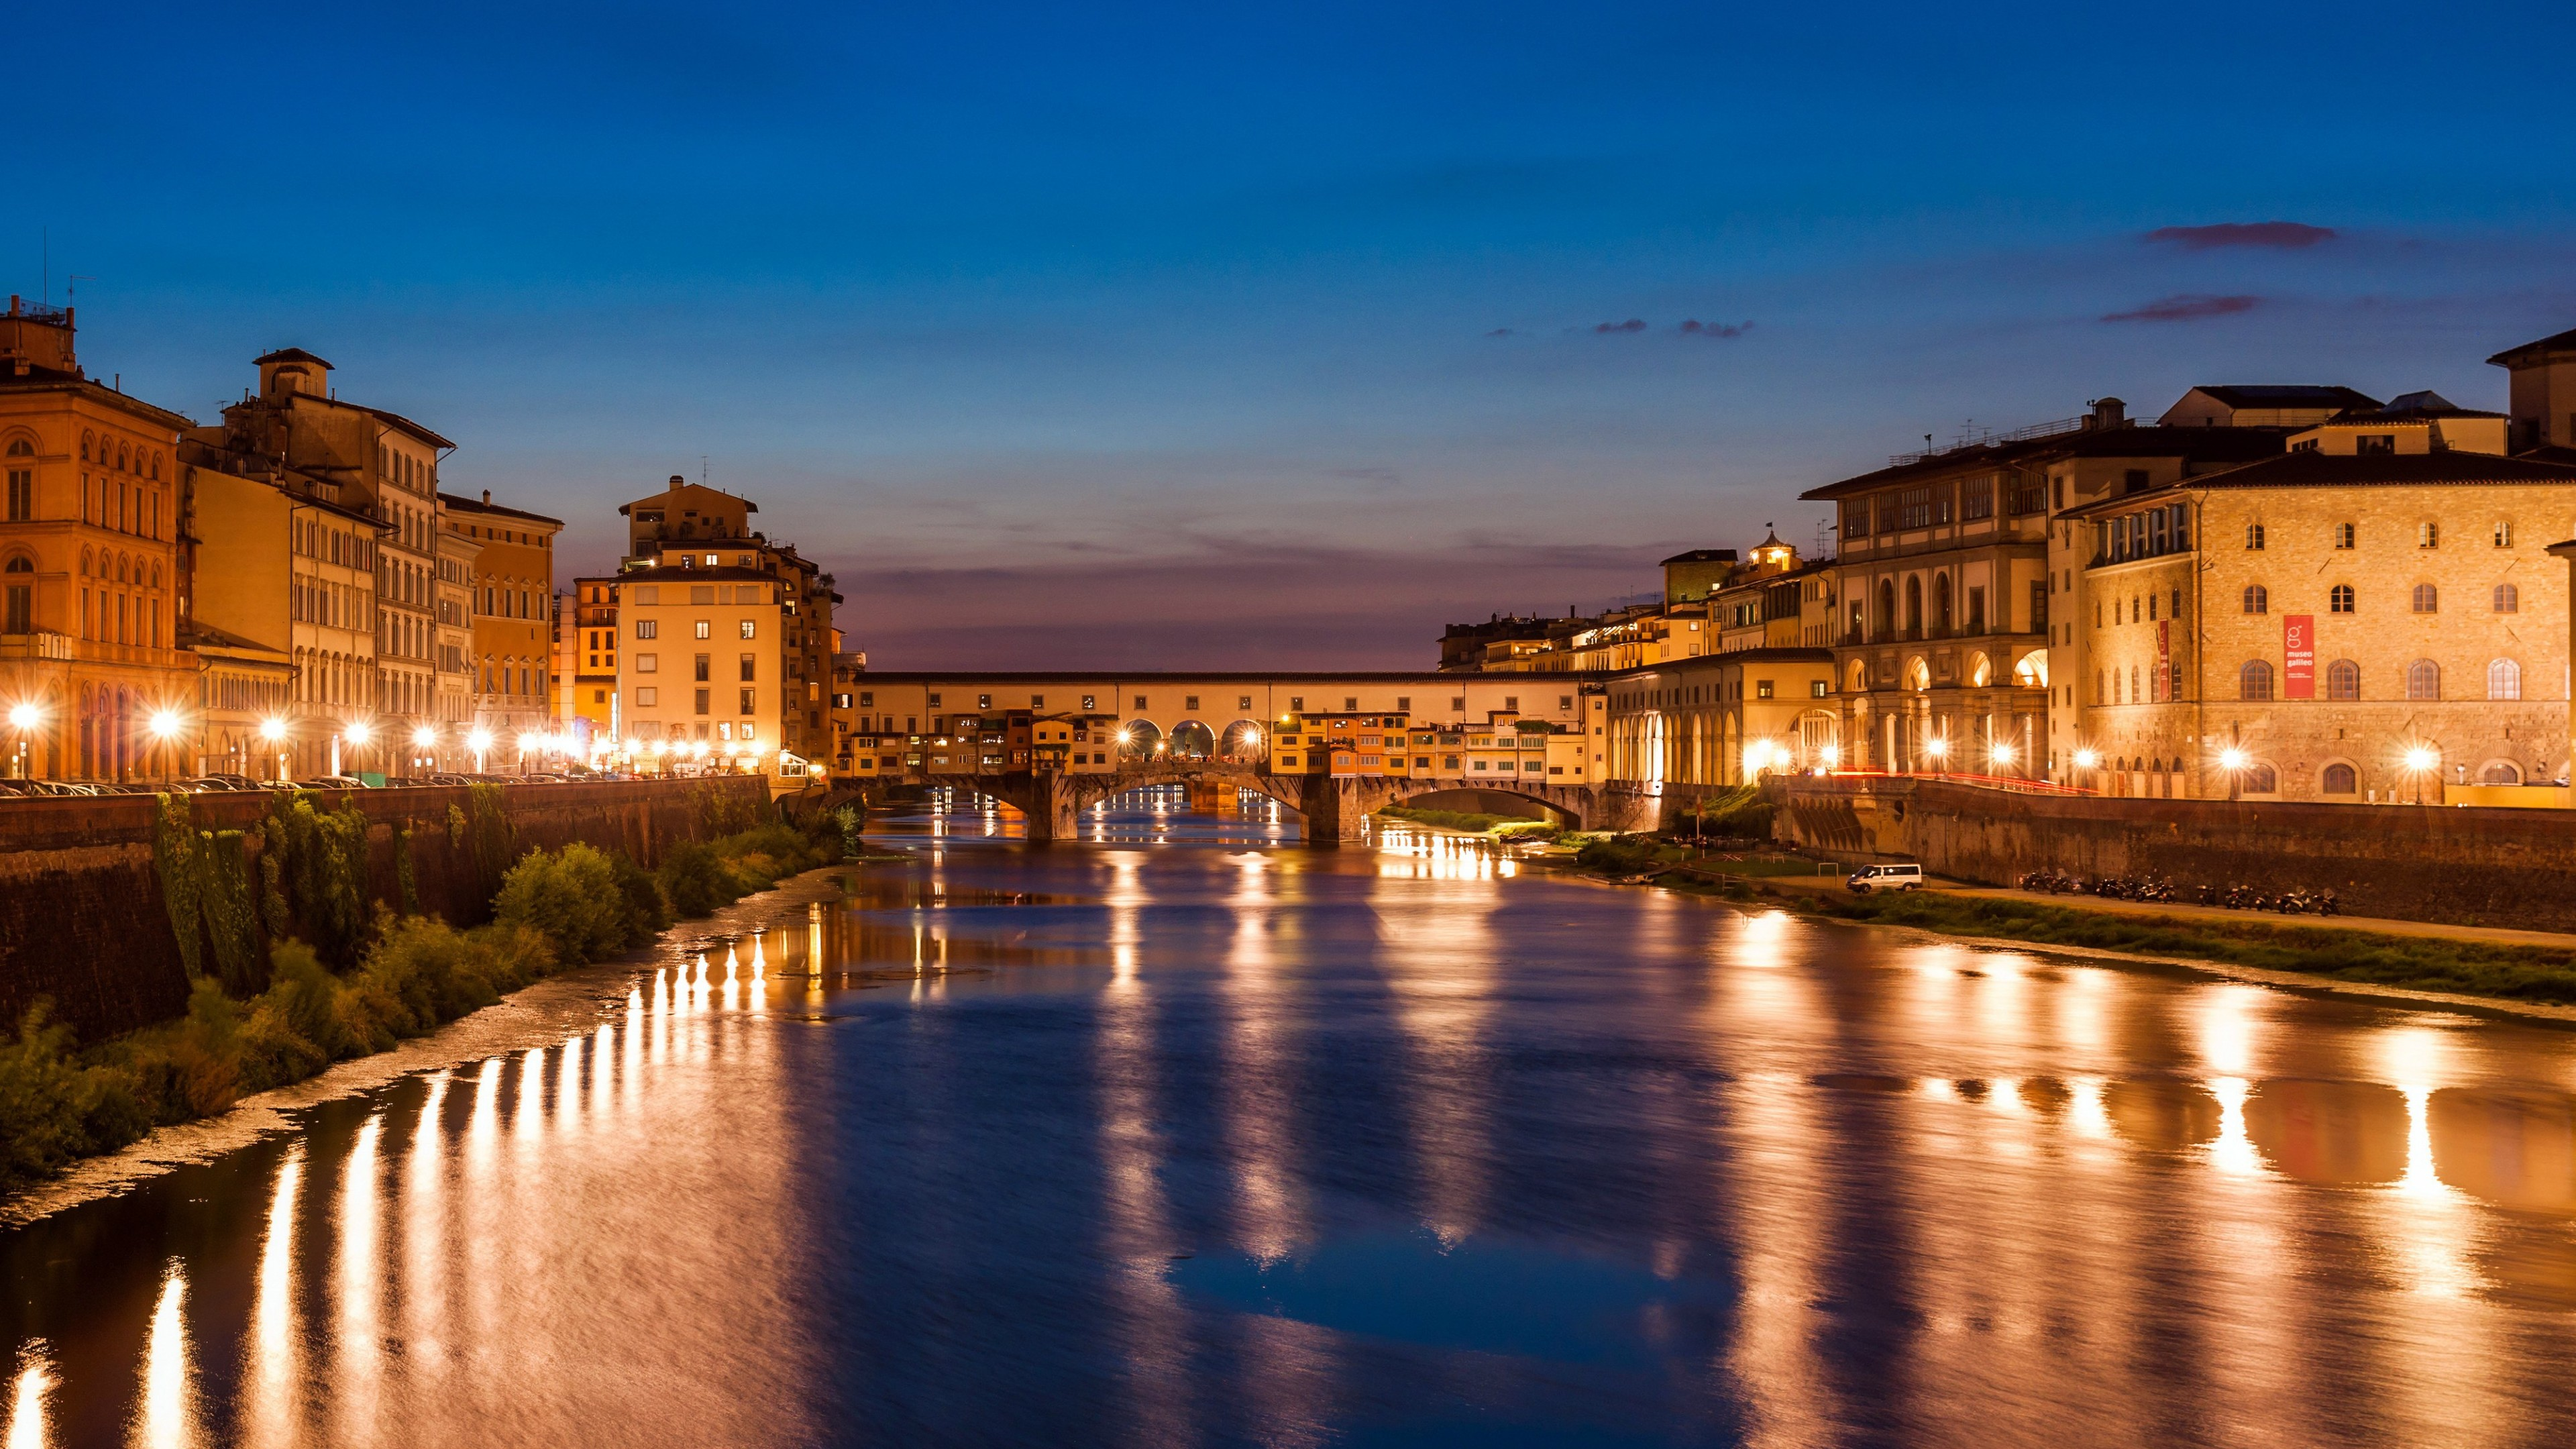 2560x1440 Wallpaper Cars Wallpaper Florence Italy Night Tourism Travel Travel